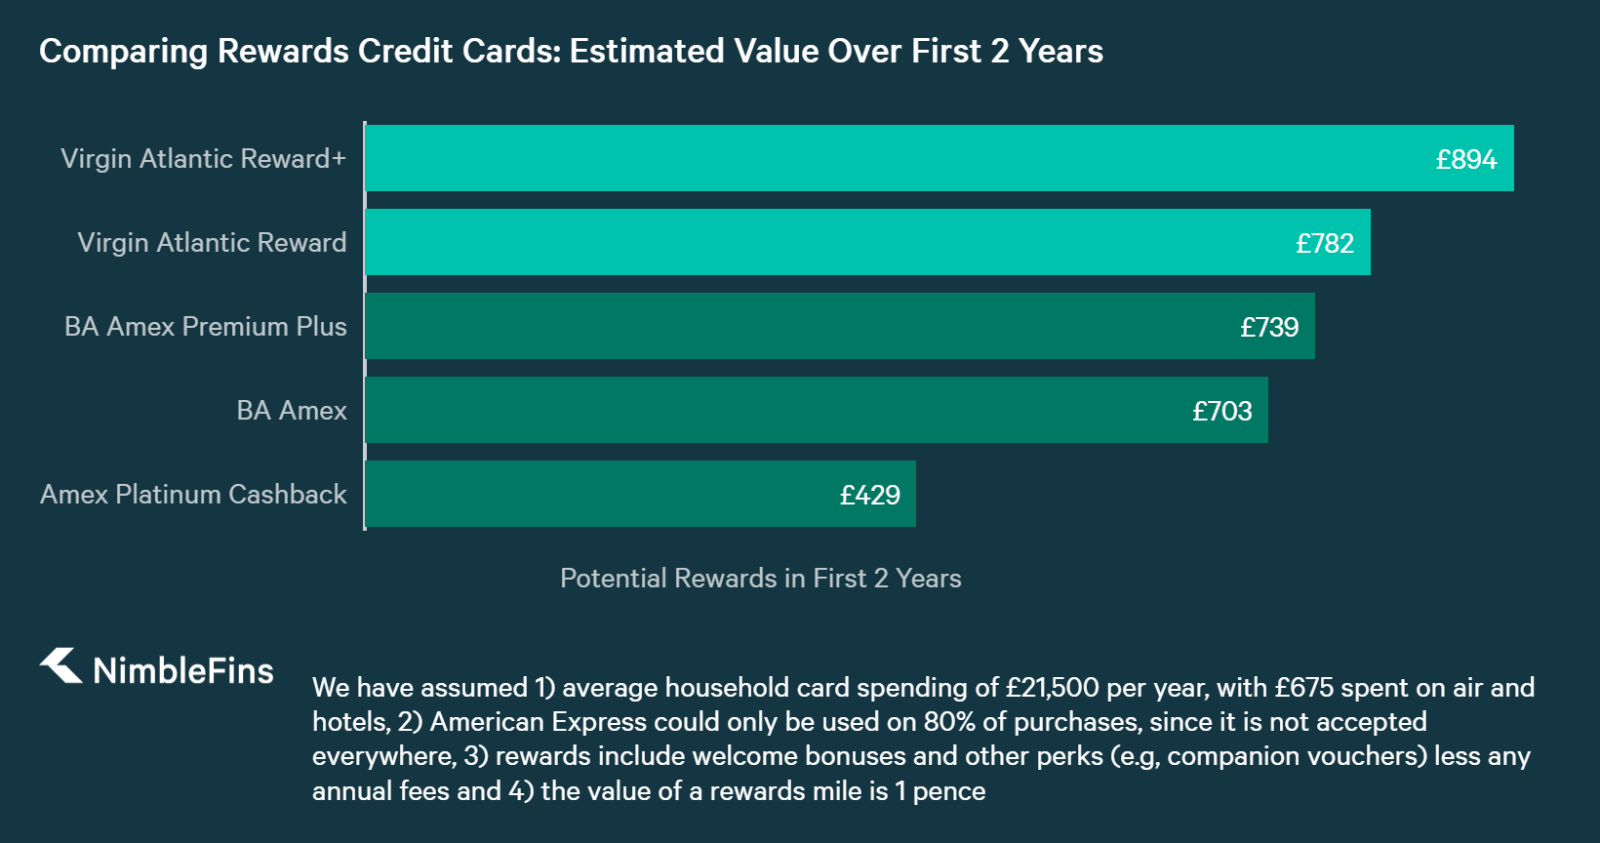 chart showing how Virgin Atlantic credit cards compare to other rewards cards